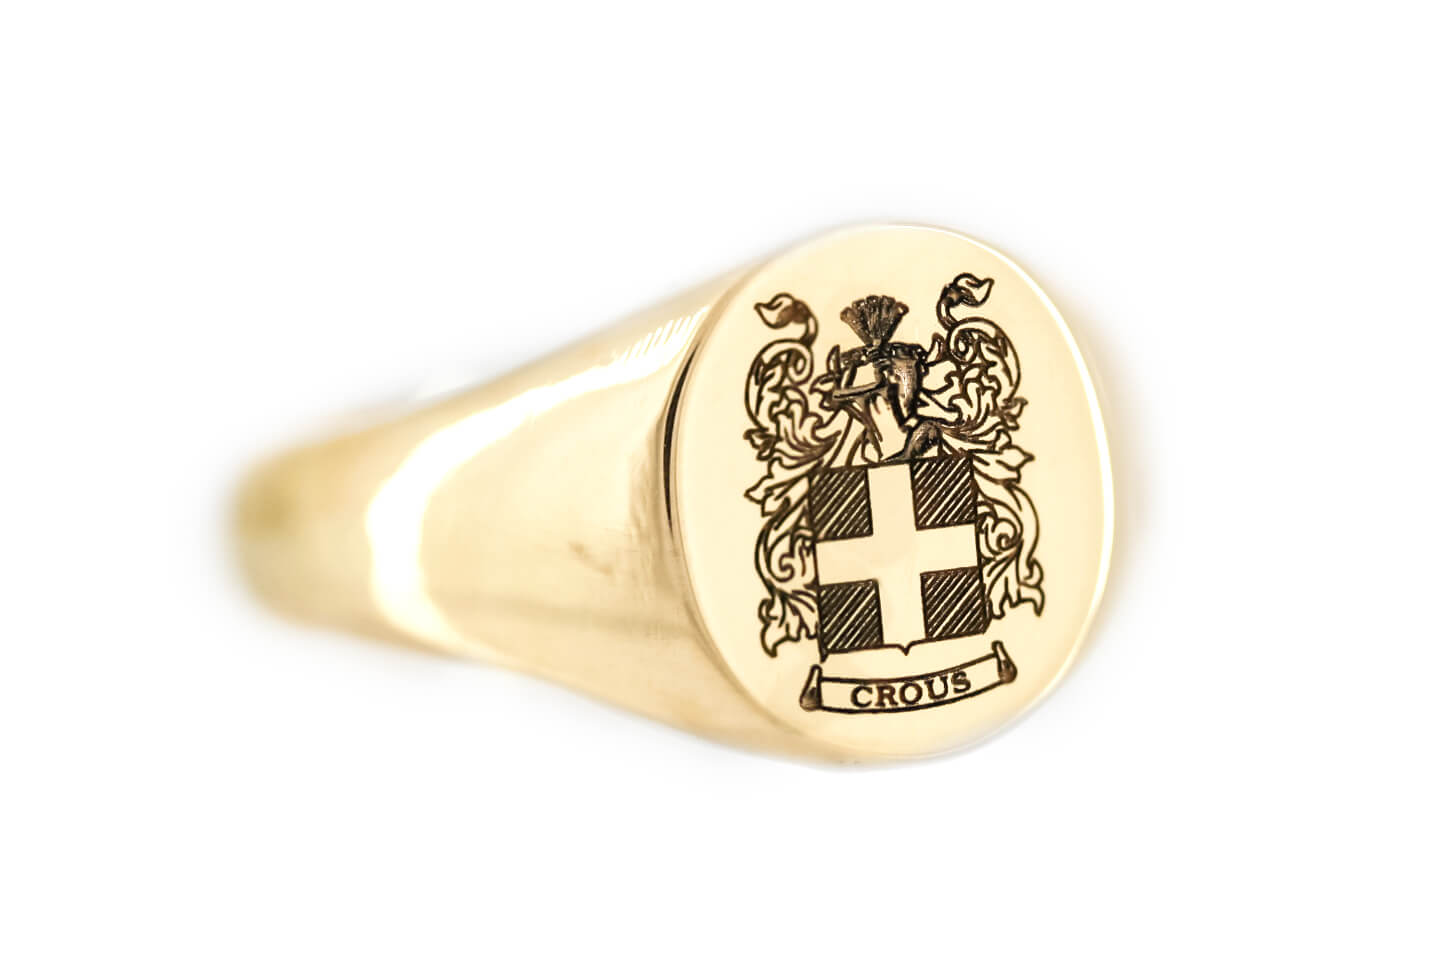 Dale Crous   Signet Ring 1